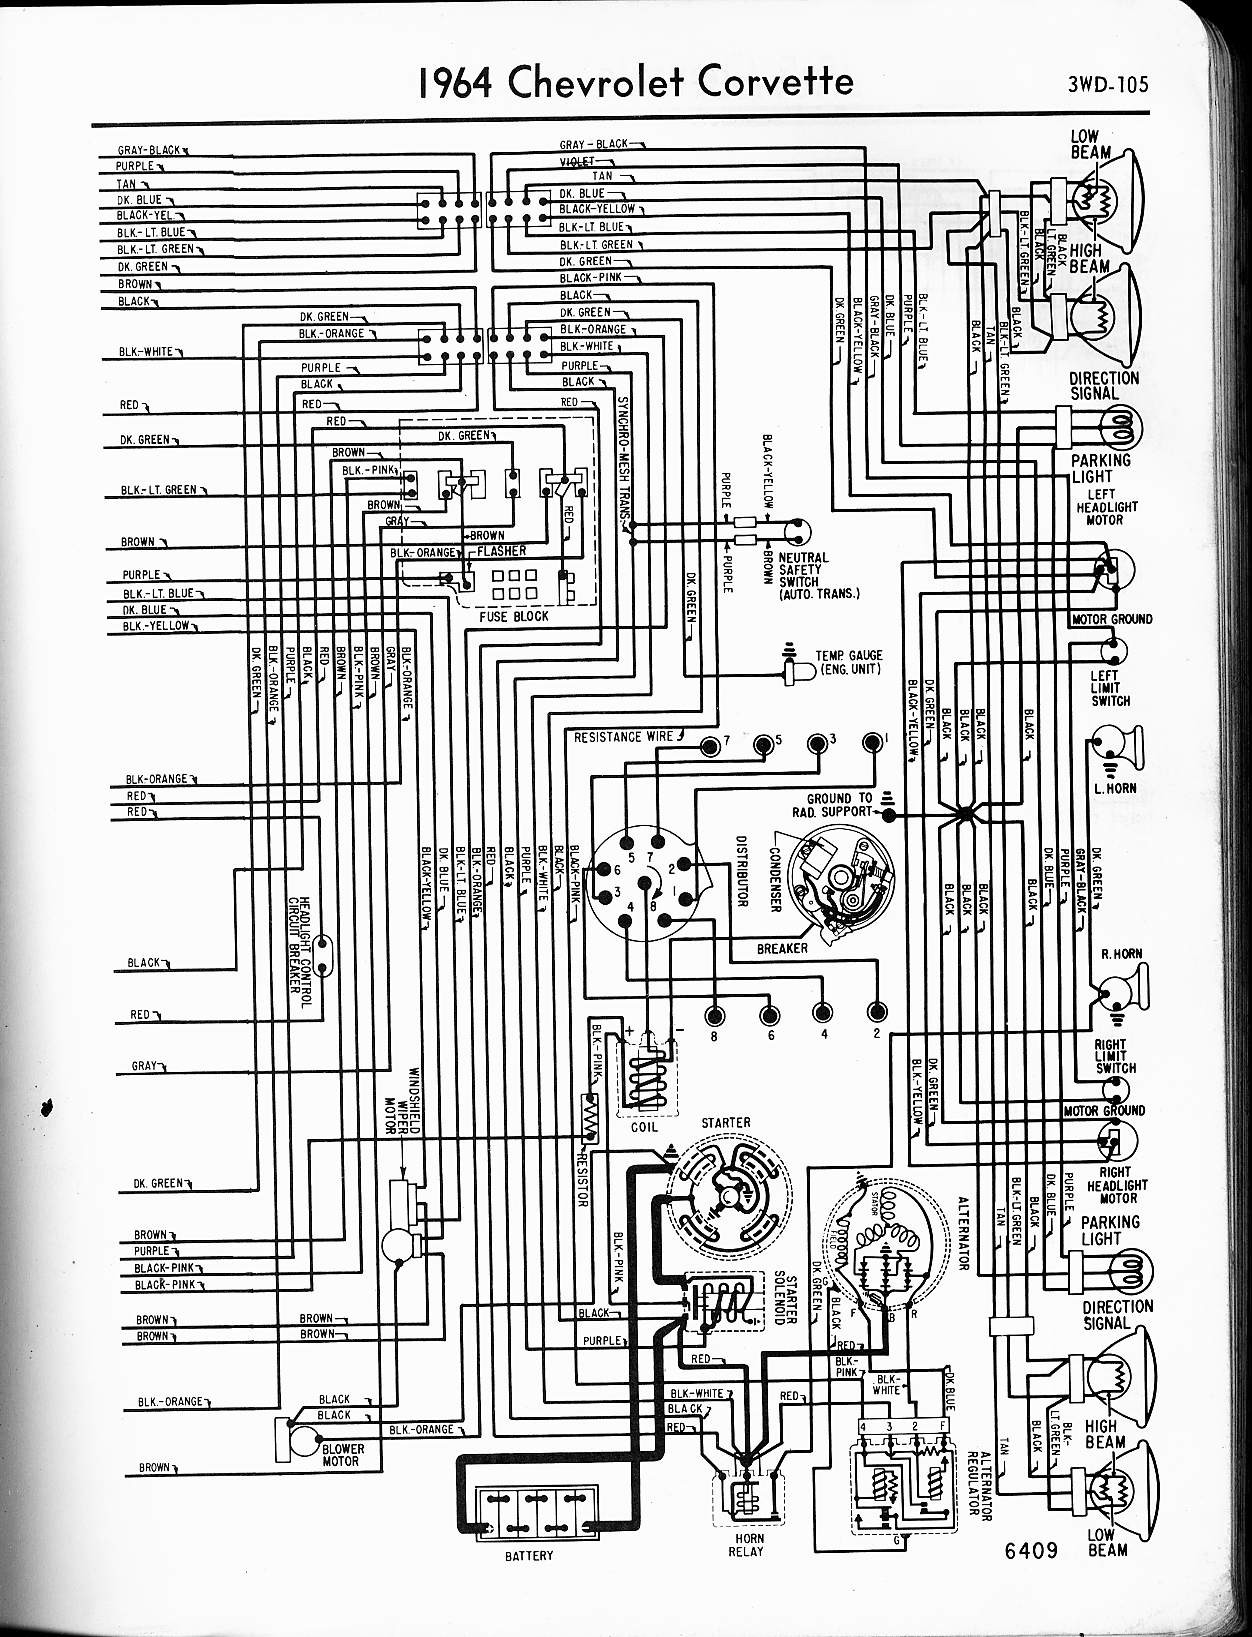 WRG-6251] Sbc Starter Wiring Diagram 1966 on